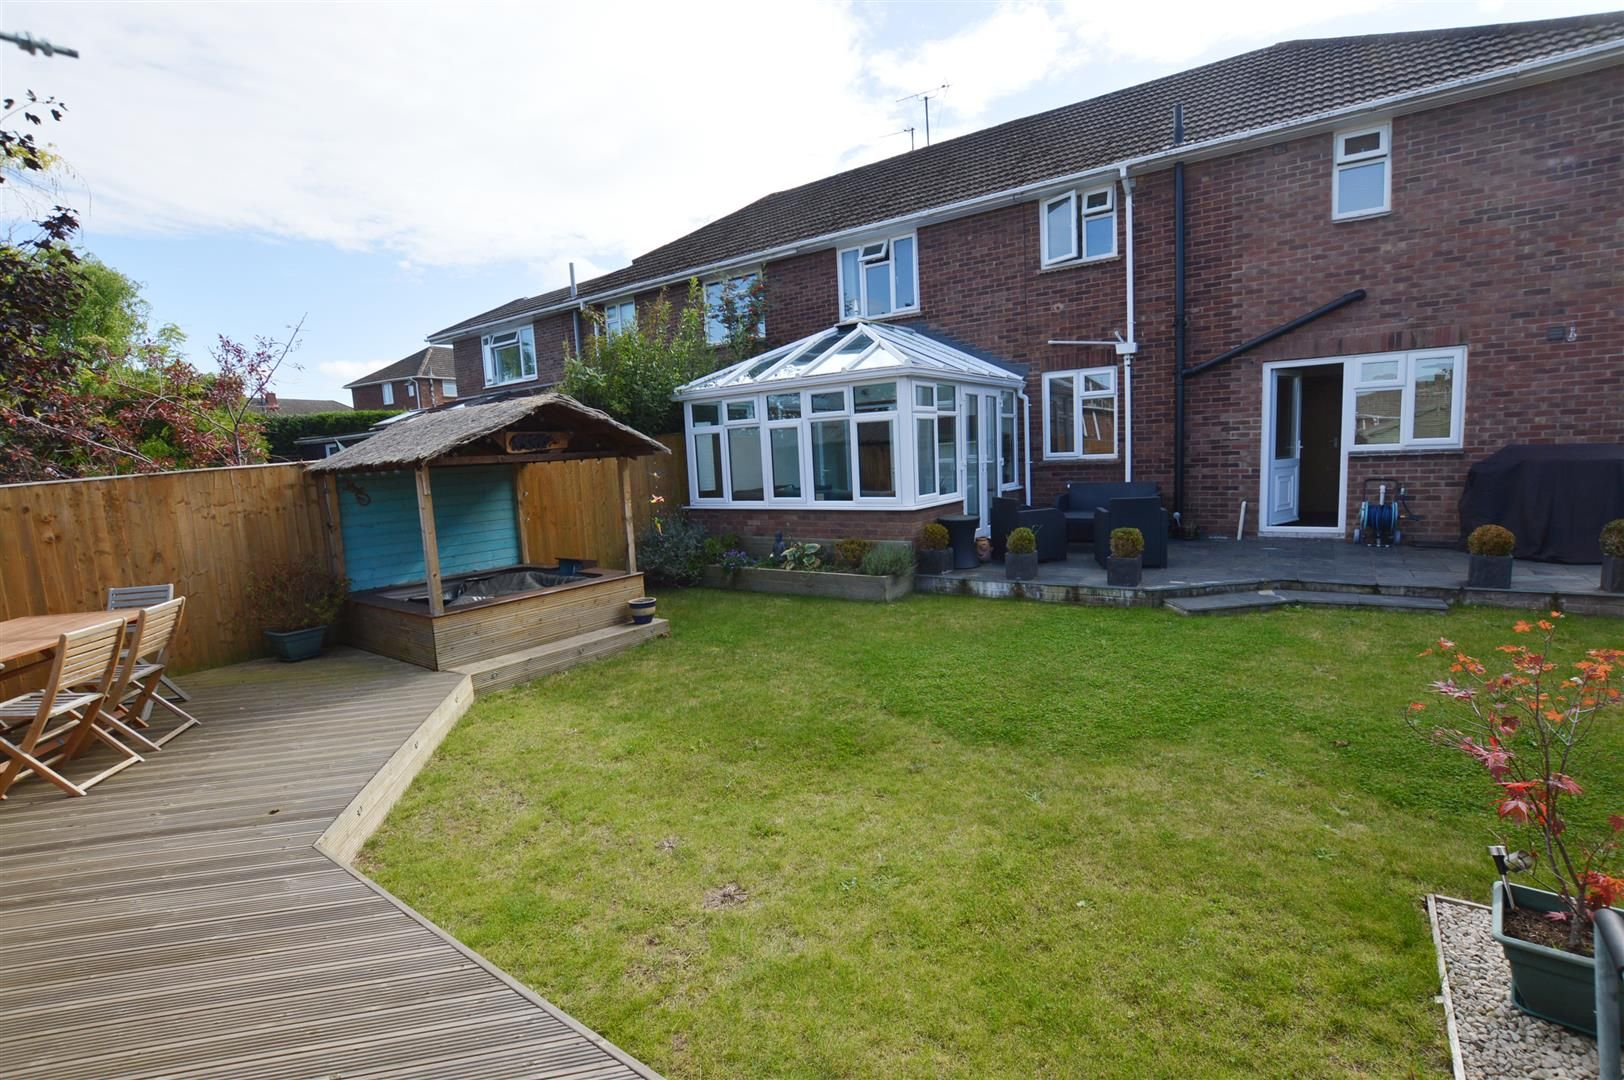 4 bed semi-detached for sale in Hereford  - Property Image 11